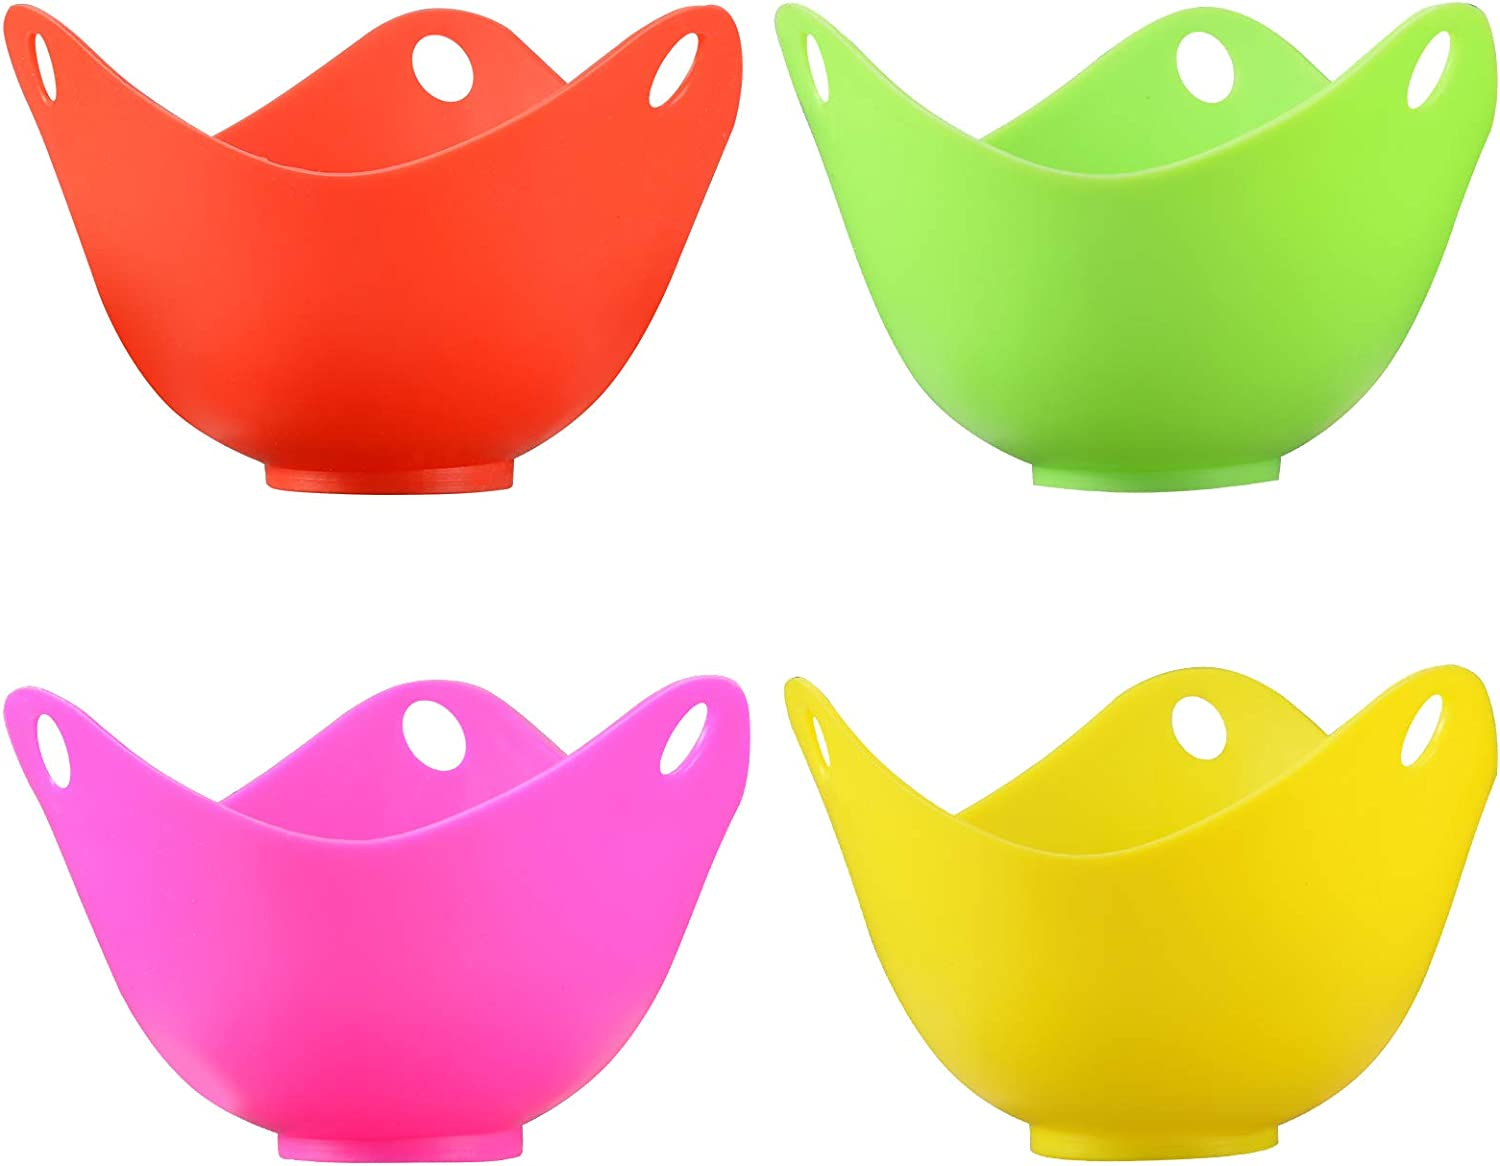 Pack of 2 Basket Holders Best Egg Poacher Cups Makes a Perfect Single Poached Egg Dish in Silicone Pod Steamer cooked in a Pan Color is Green Pouch Reliable Home Products